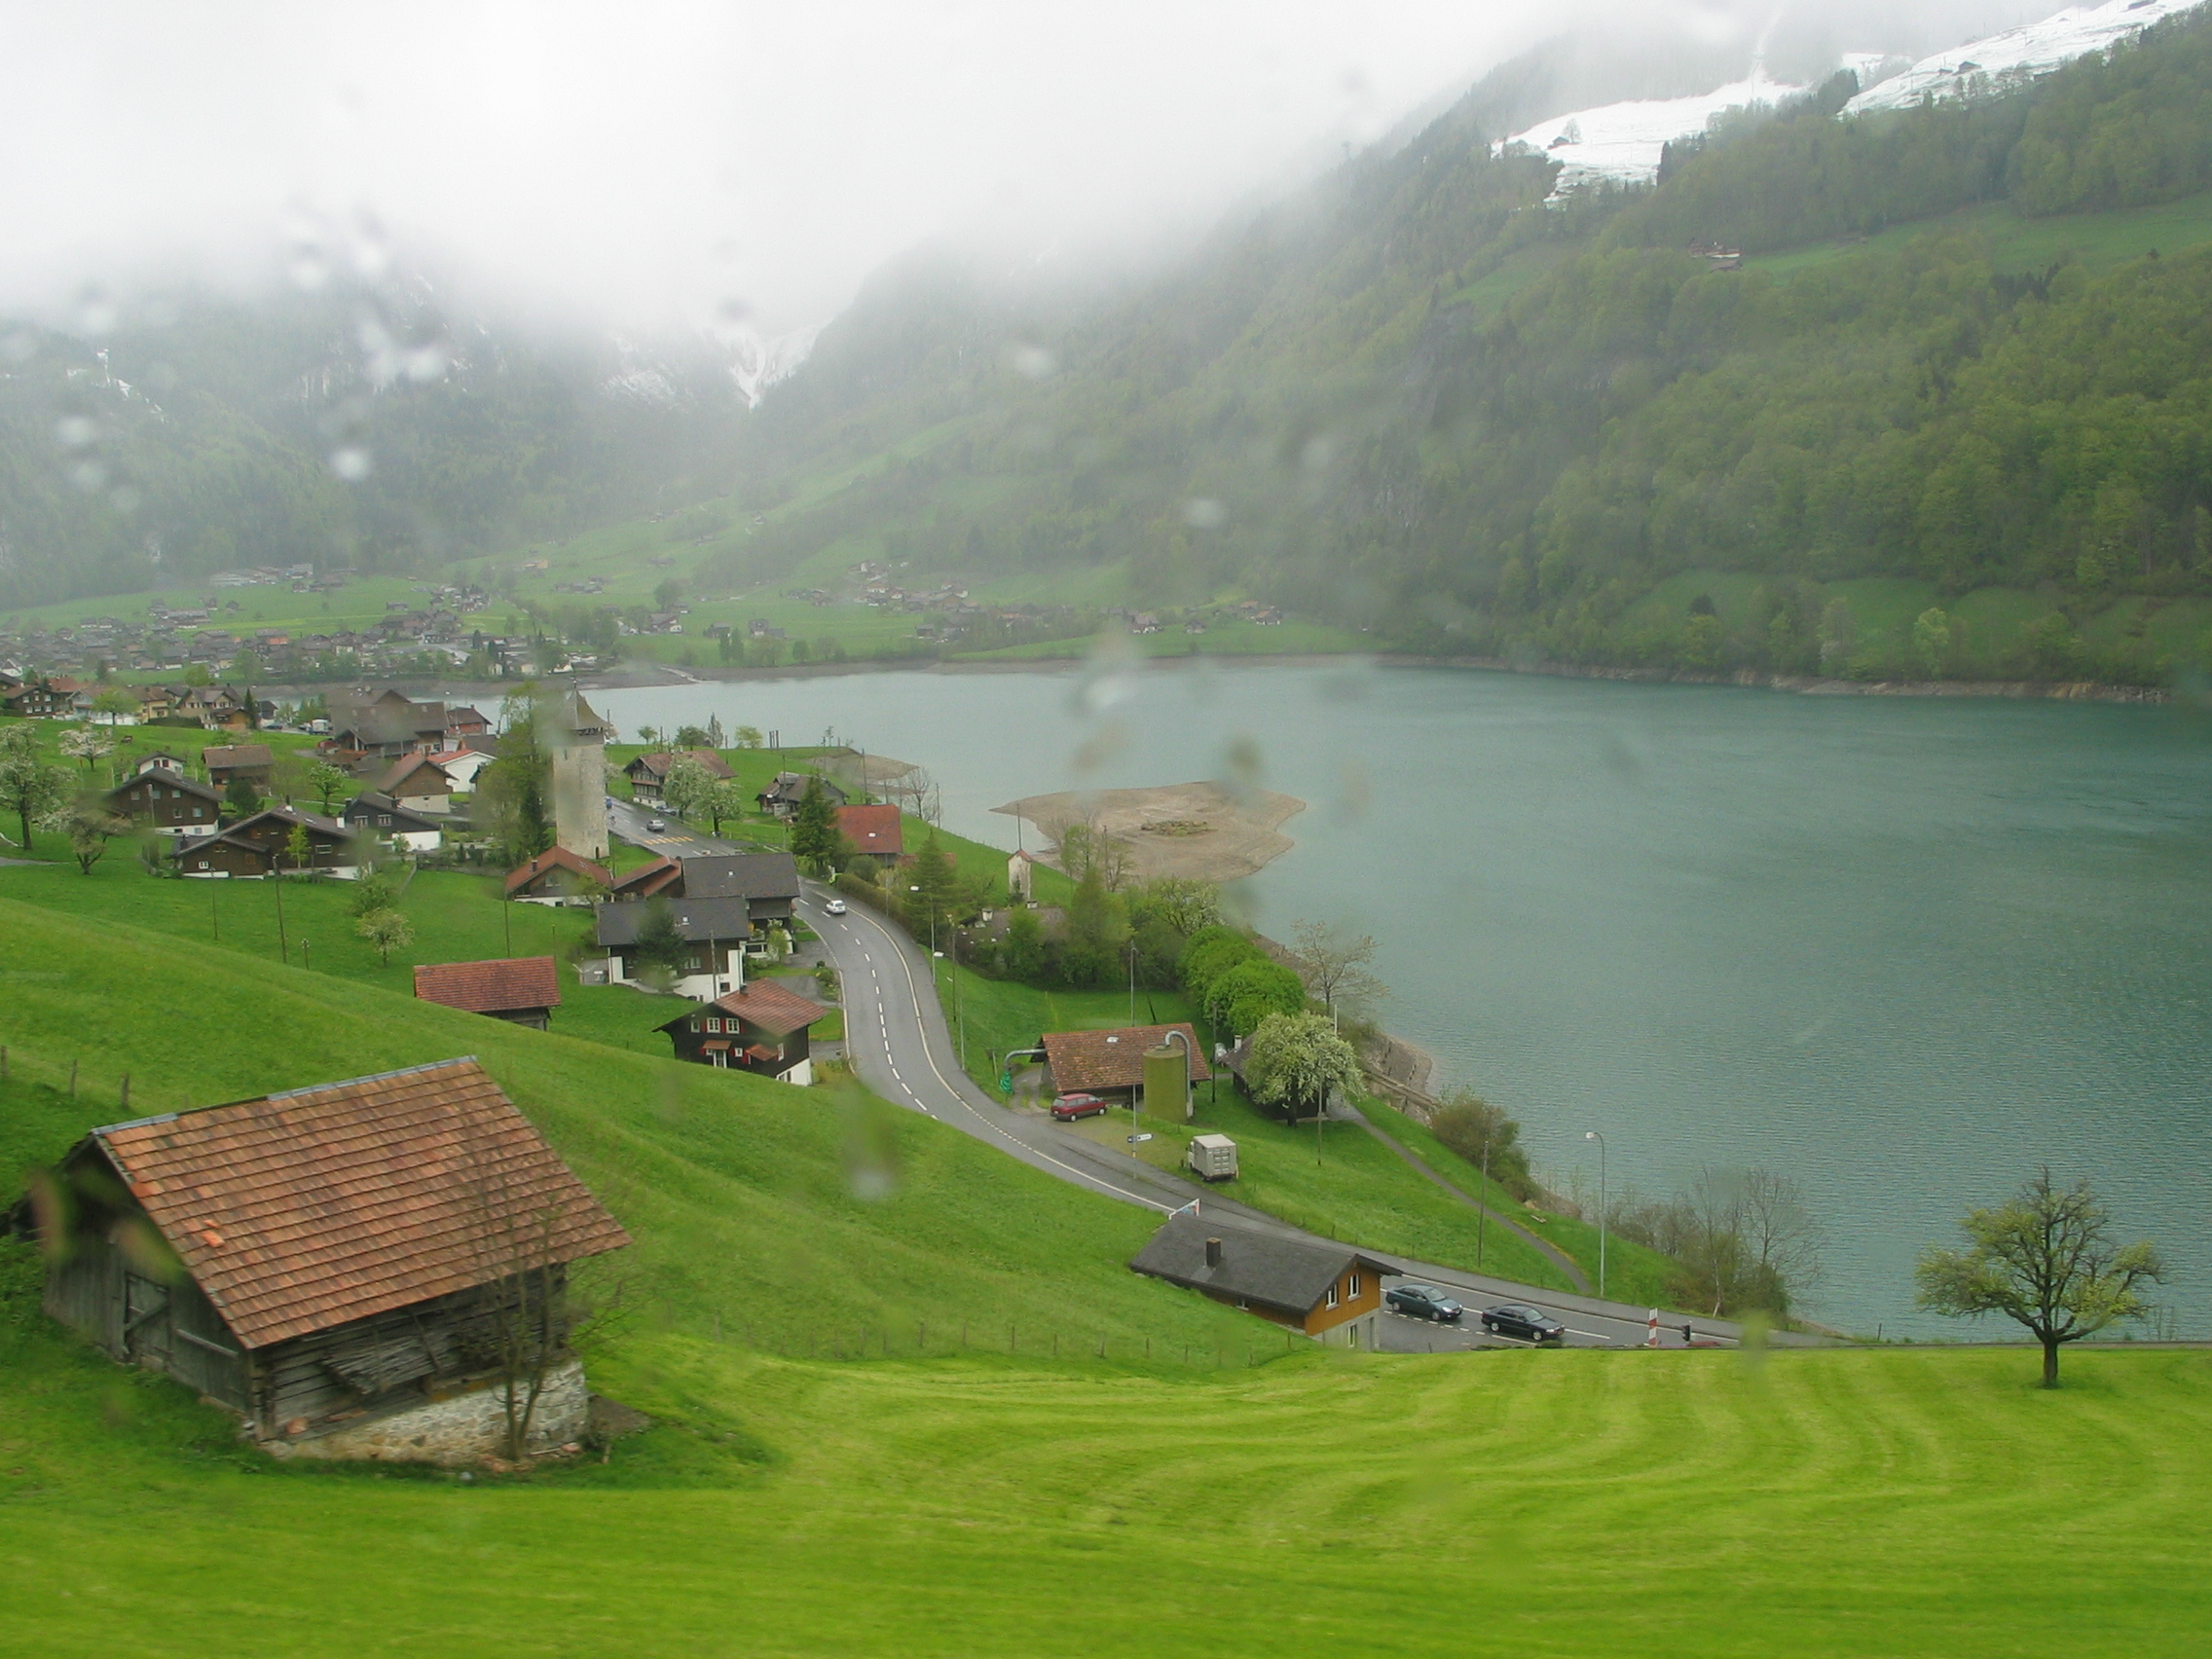 Eurail Swiss landscapes2.JPG